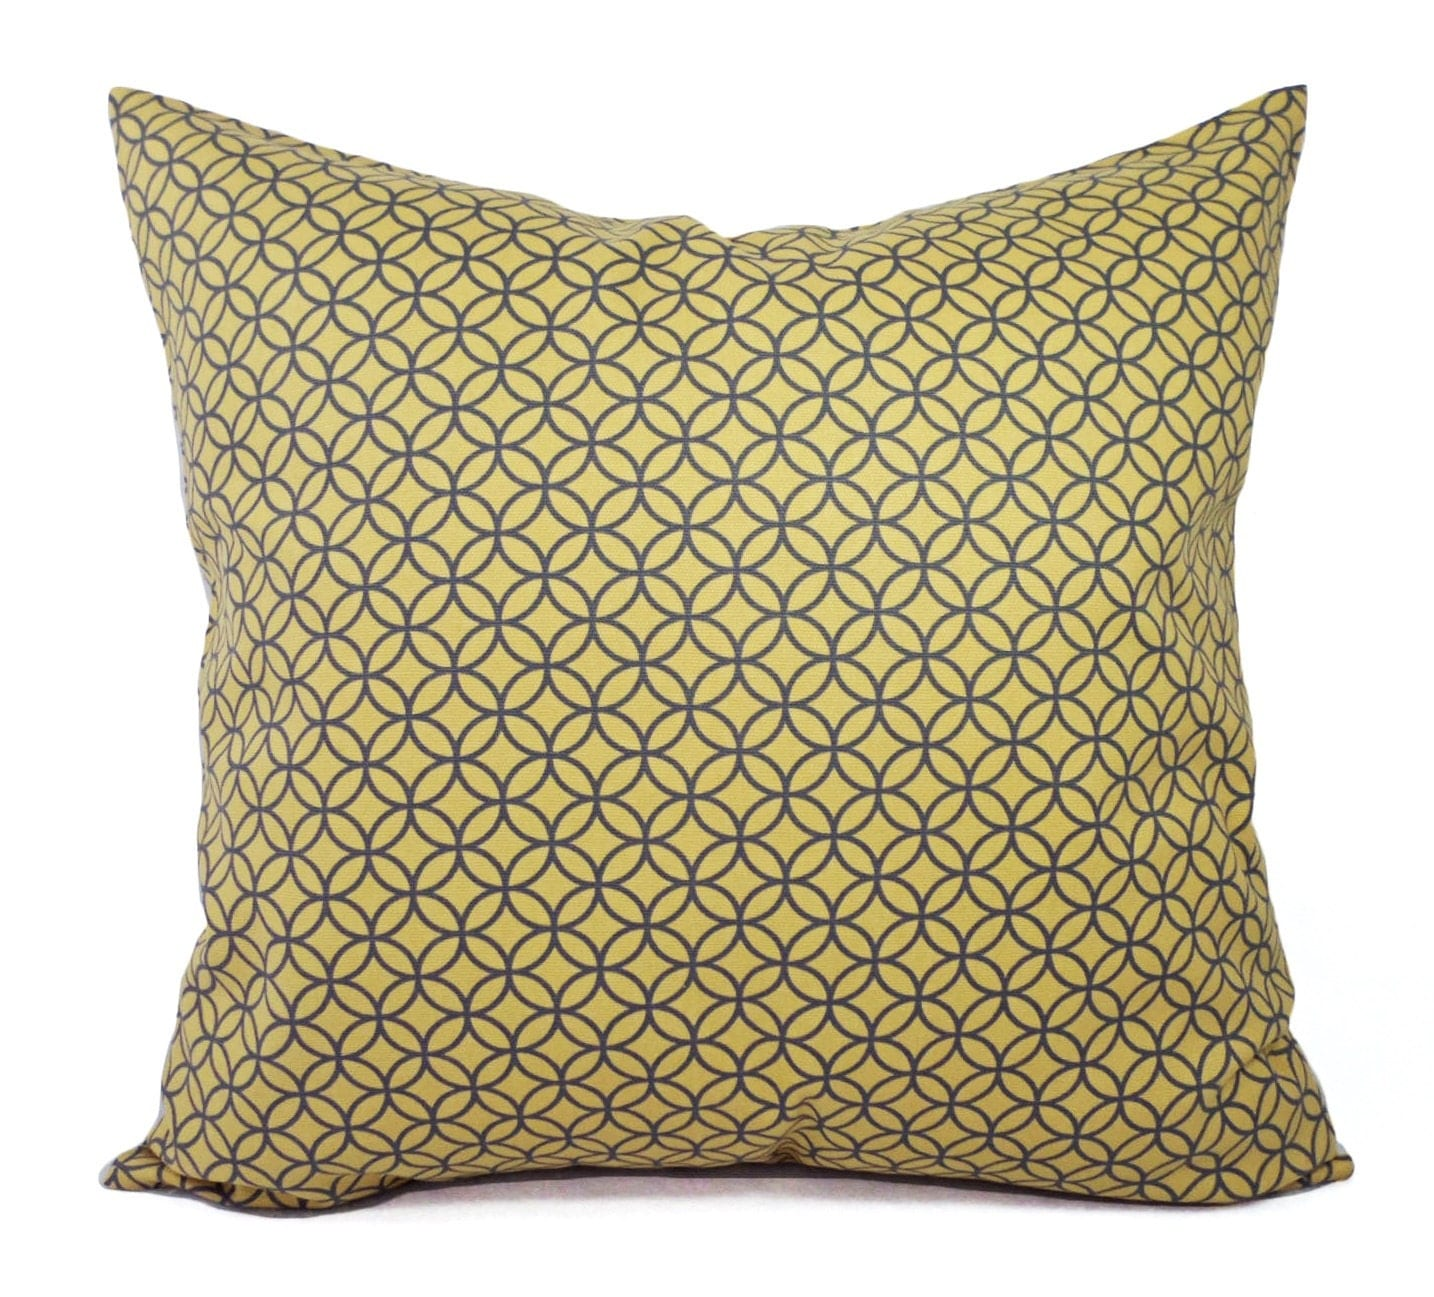 Throw Pillows In Clearance : CLEARANCE Pillow Cover Decorative Throw by CastawayCoveDecor